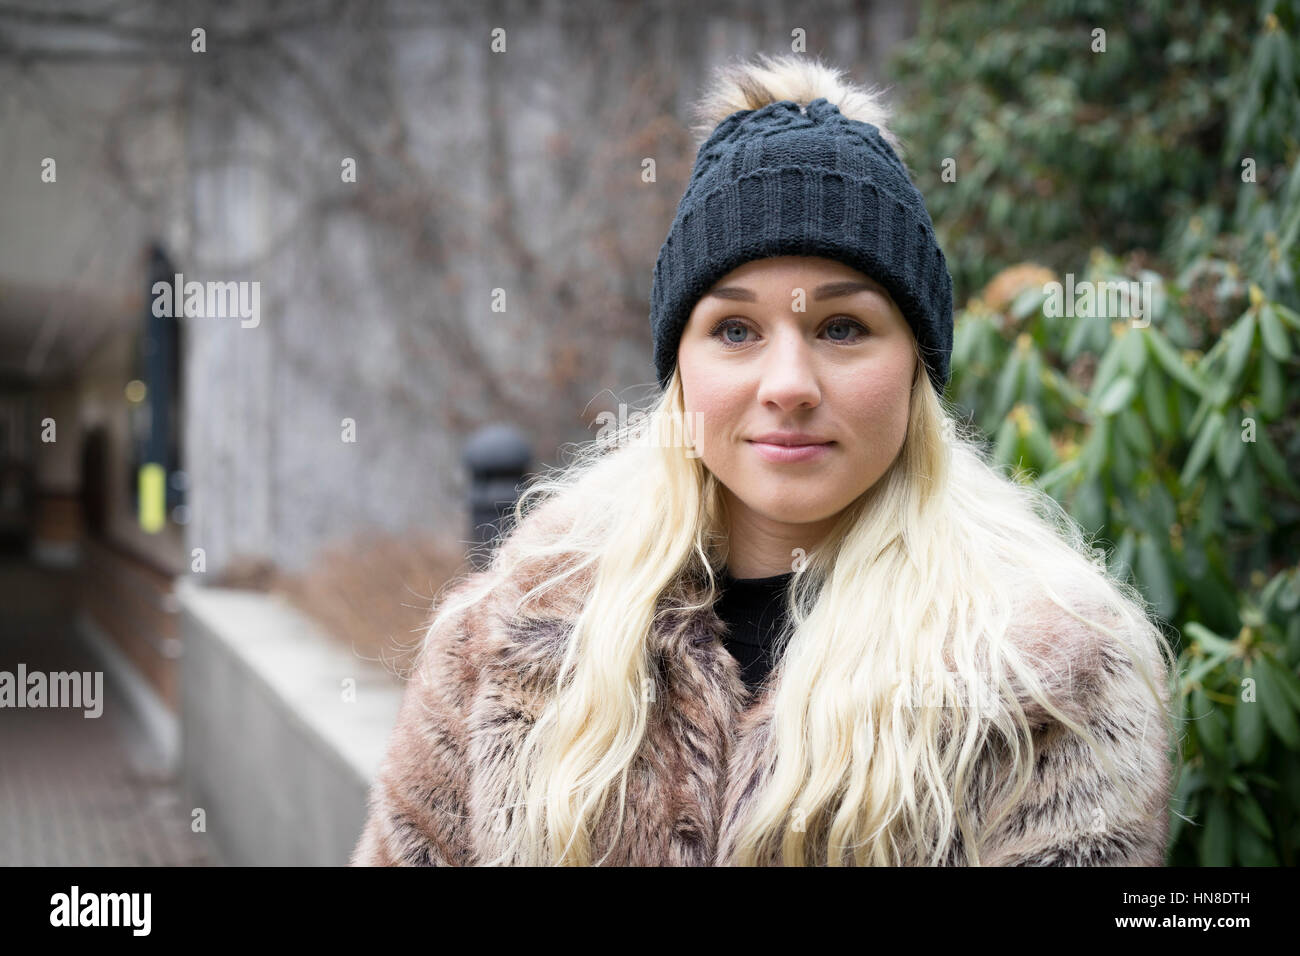 Beautiful blonde caucasian fashion woman in cap and a fur coat. Swedish Scandinavian ethnicity. Winter and outdoor - Stock Image